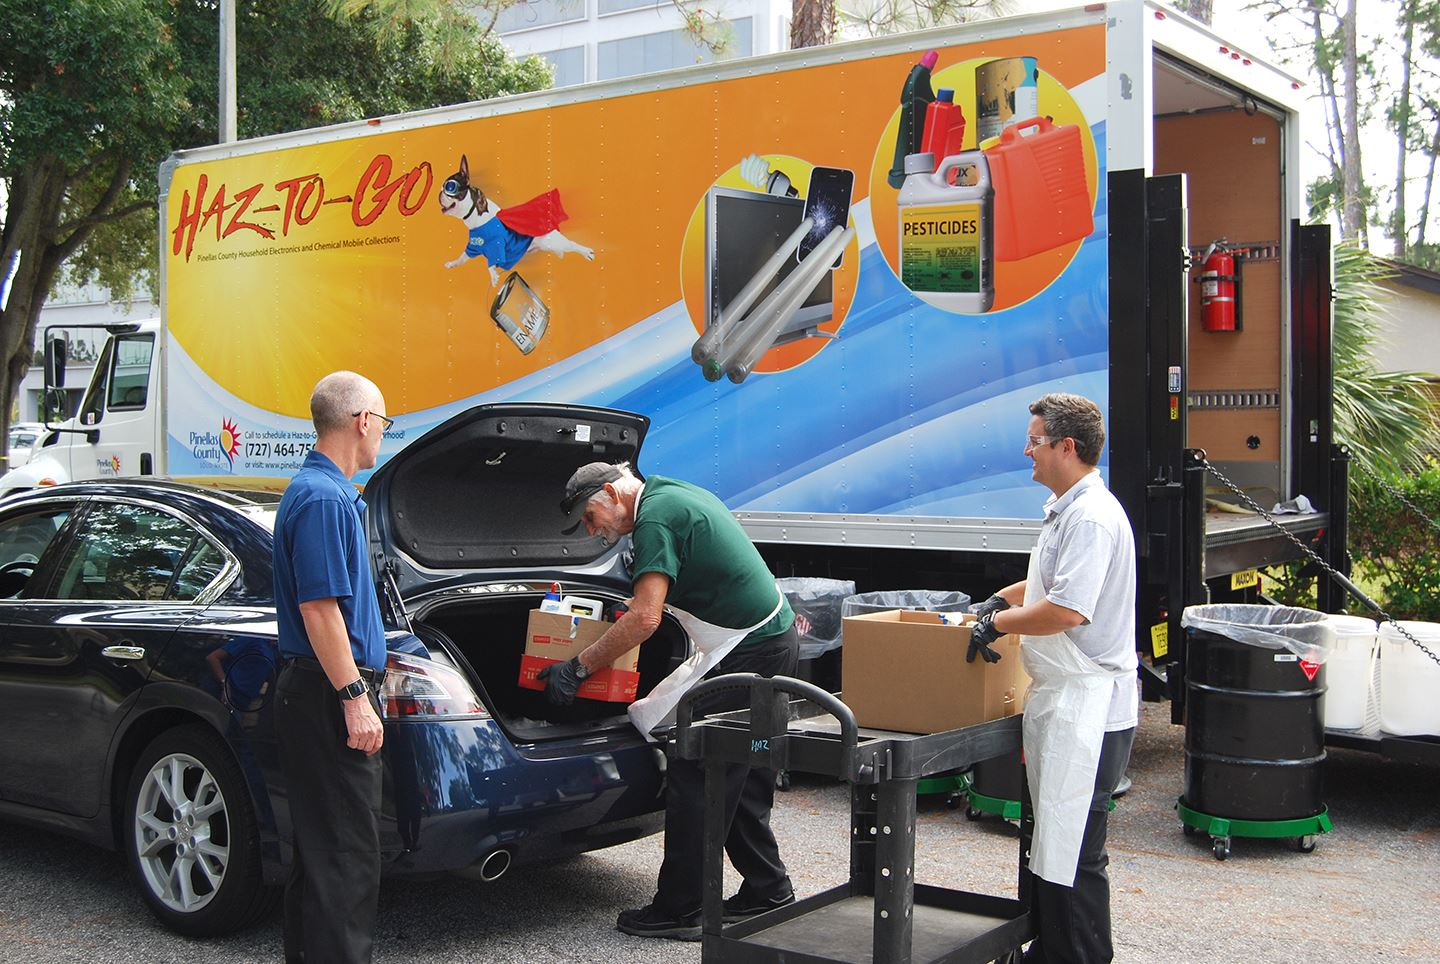 Two Pinellas County employees remove chemicals from the truck of a customer's car